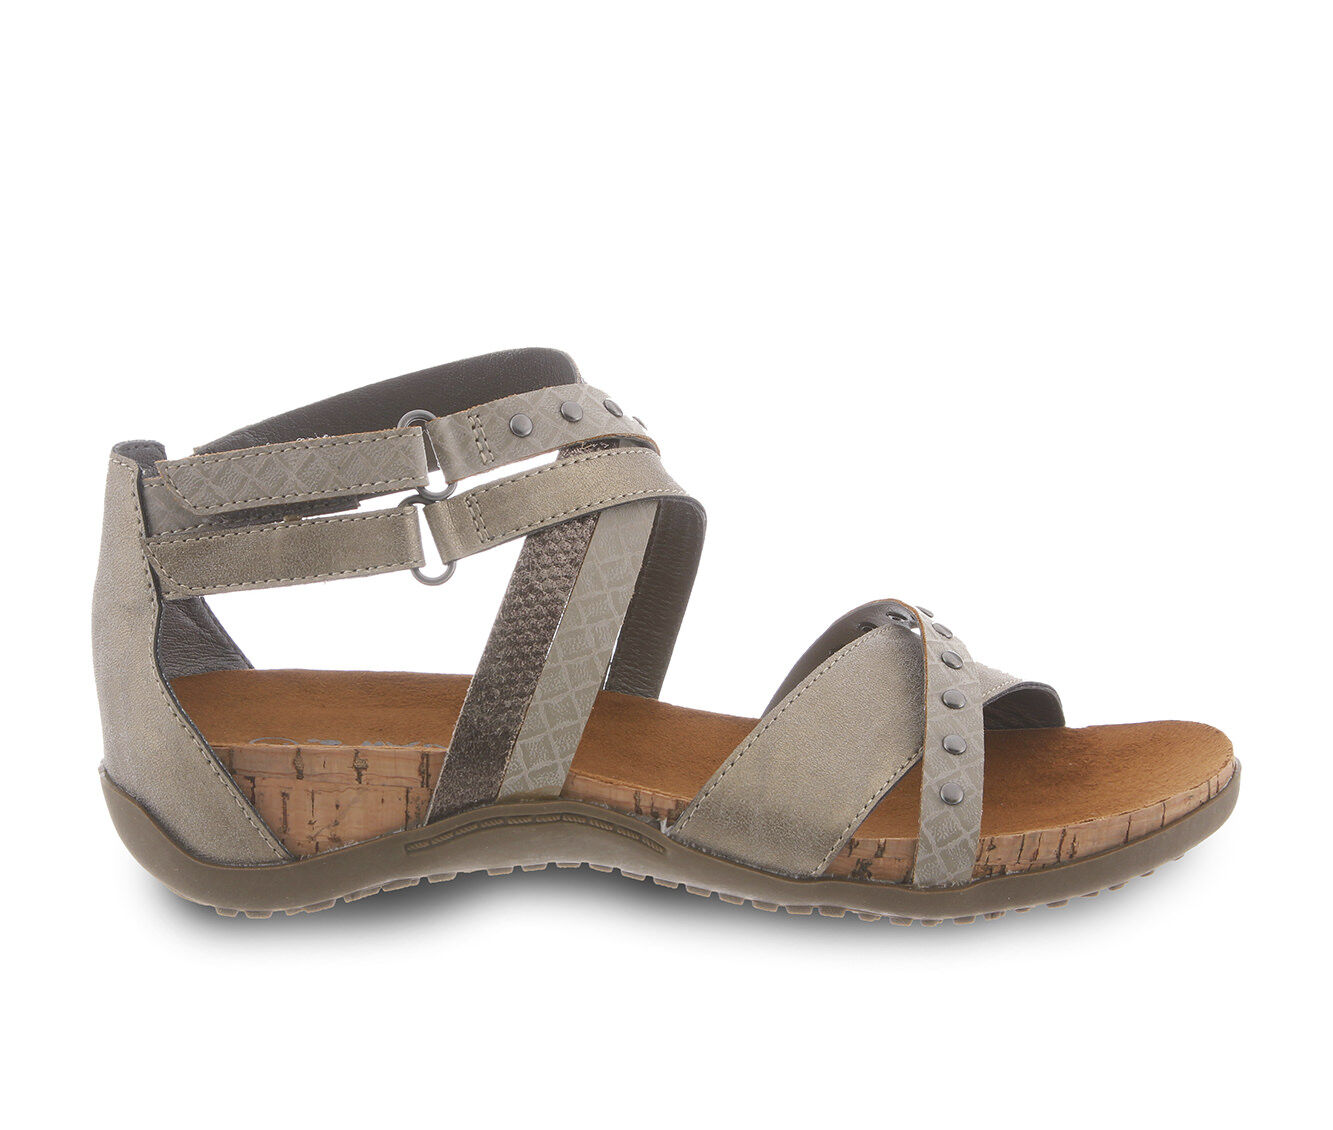 Women's Bearpaw Juliana Strappy Footbed Sandals Pewter